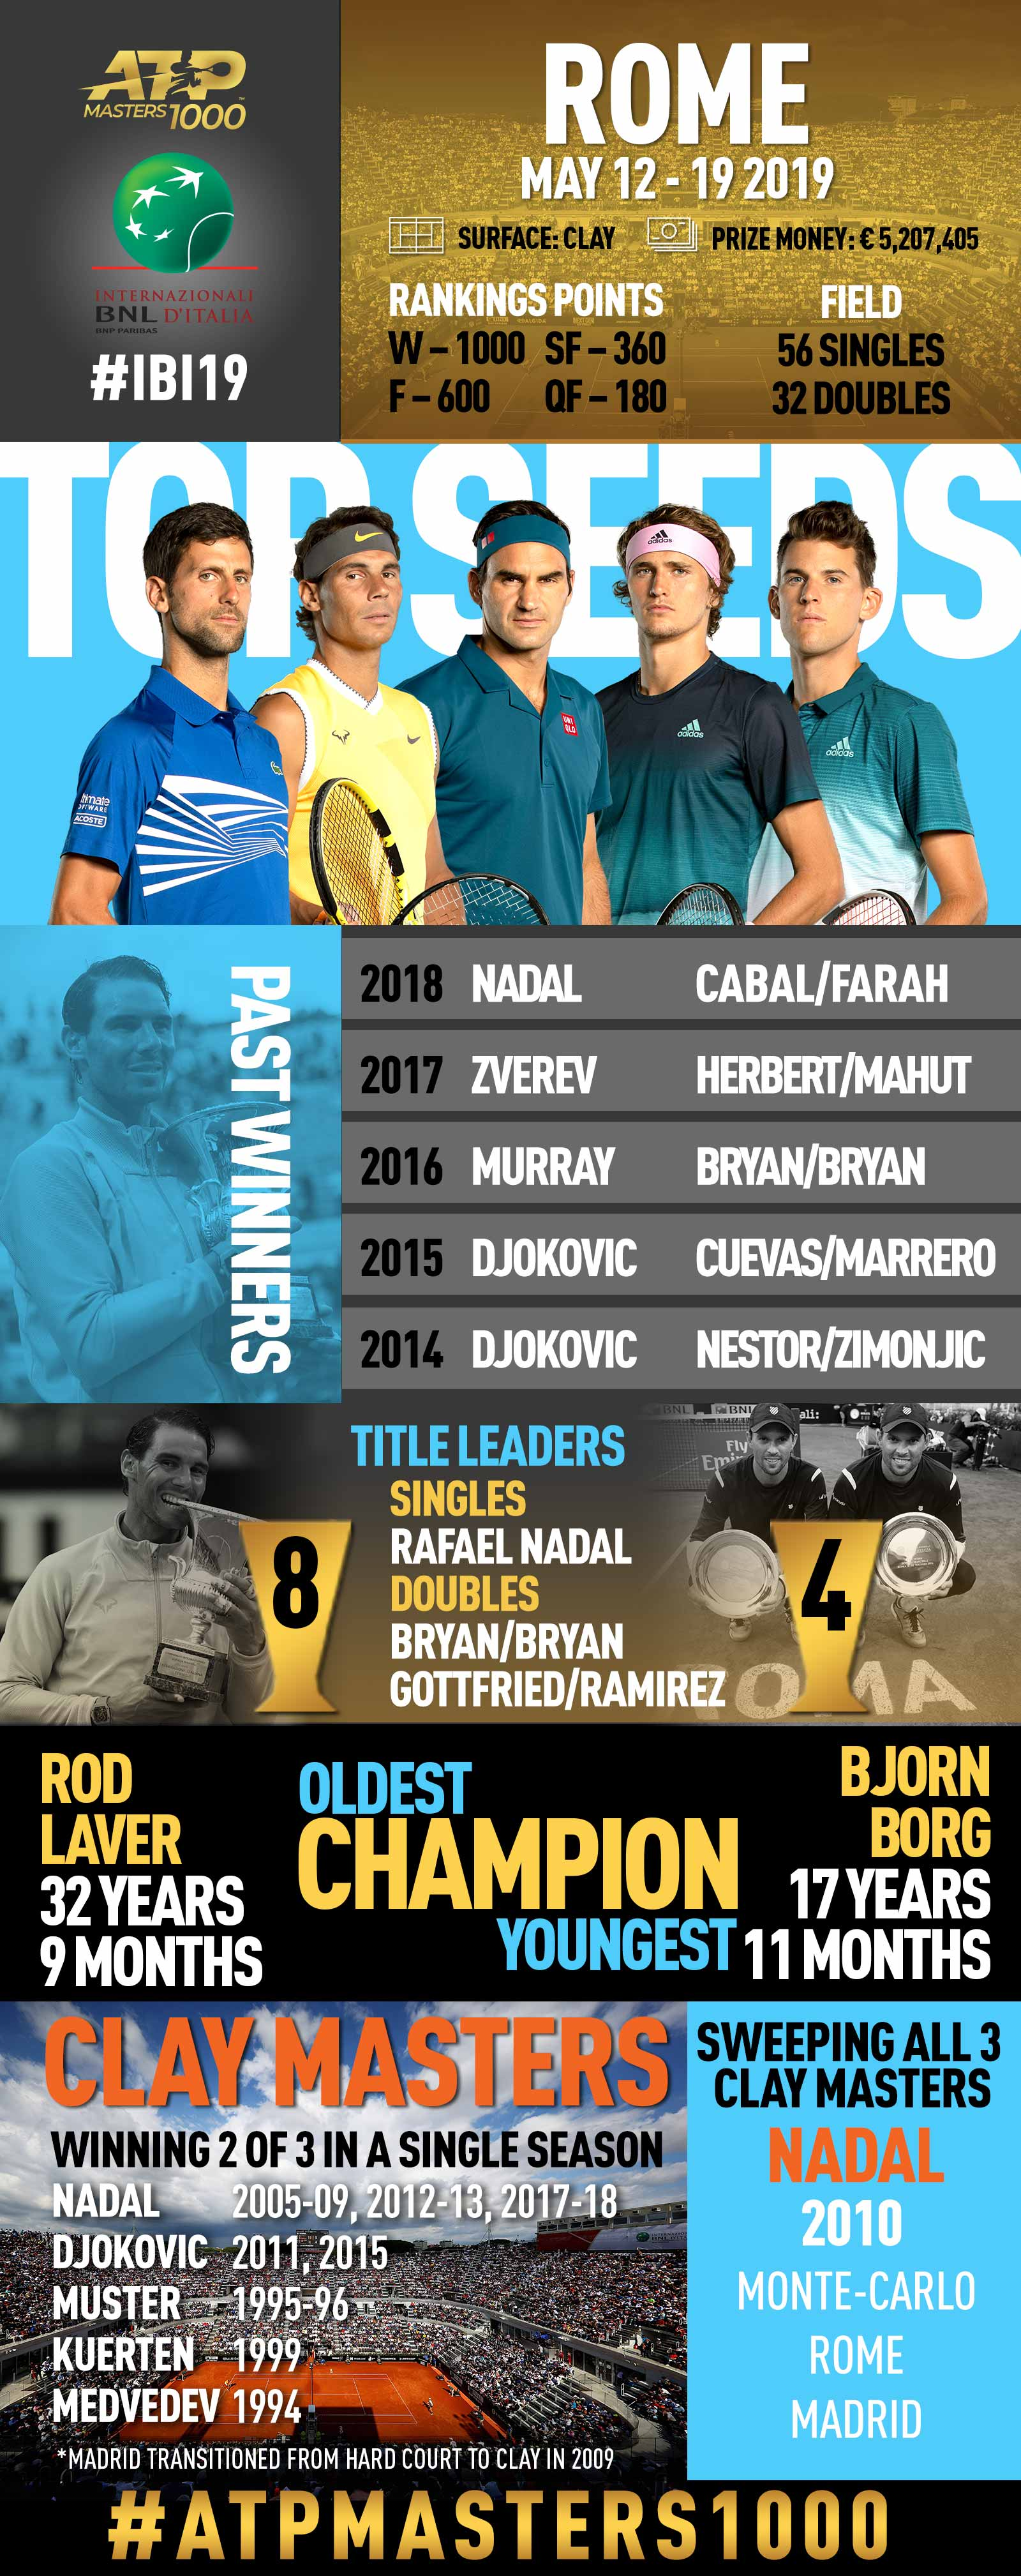 <a href='https://www.atptour.com/en/tournaments/rome/416/overview'>Internazionali BNL d'Italia</a>, an ATP Masters 1000 tennis tournament in Rome featuring Nadal, Djokovic, Federer, Zverev, Thiem